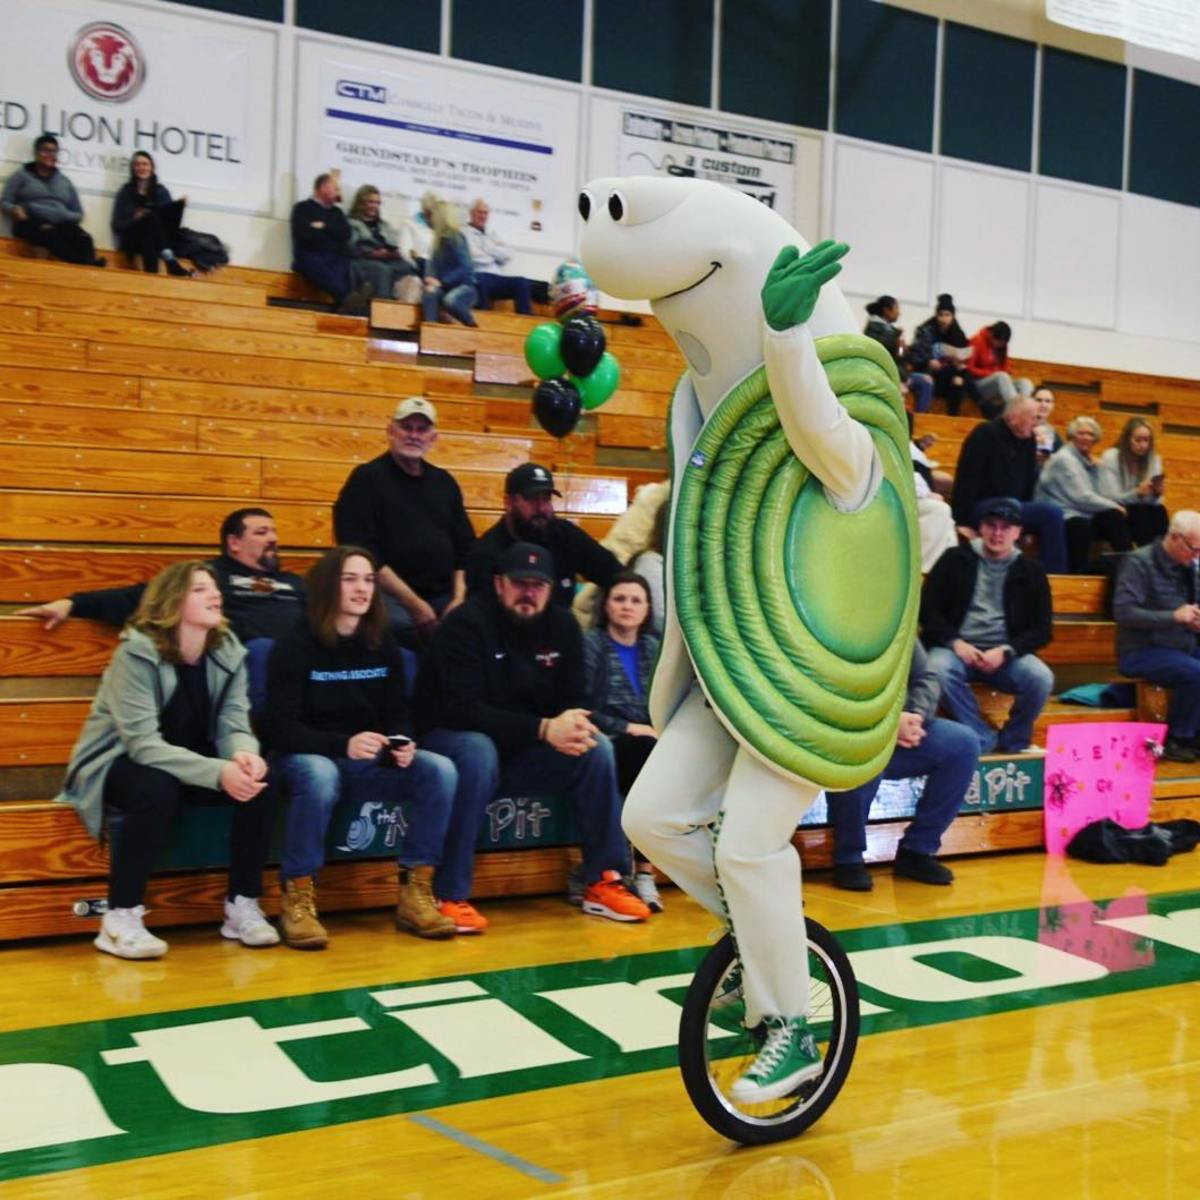 """""""Speedy the Geoduck"""" drives a unicycle at a basketball game in 2019. (Photo from The Evergreen State College, Facebook)"""